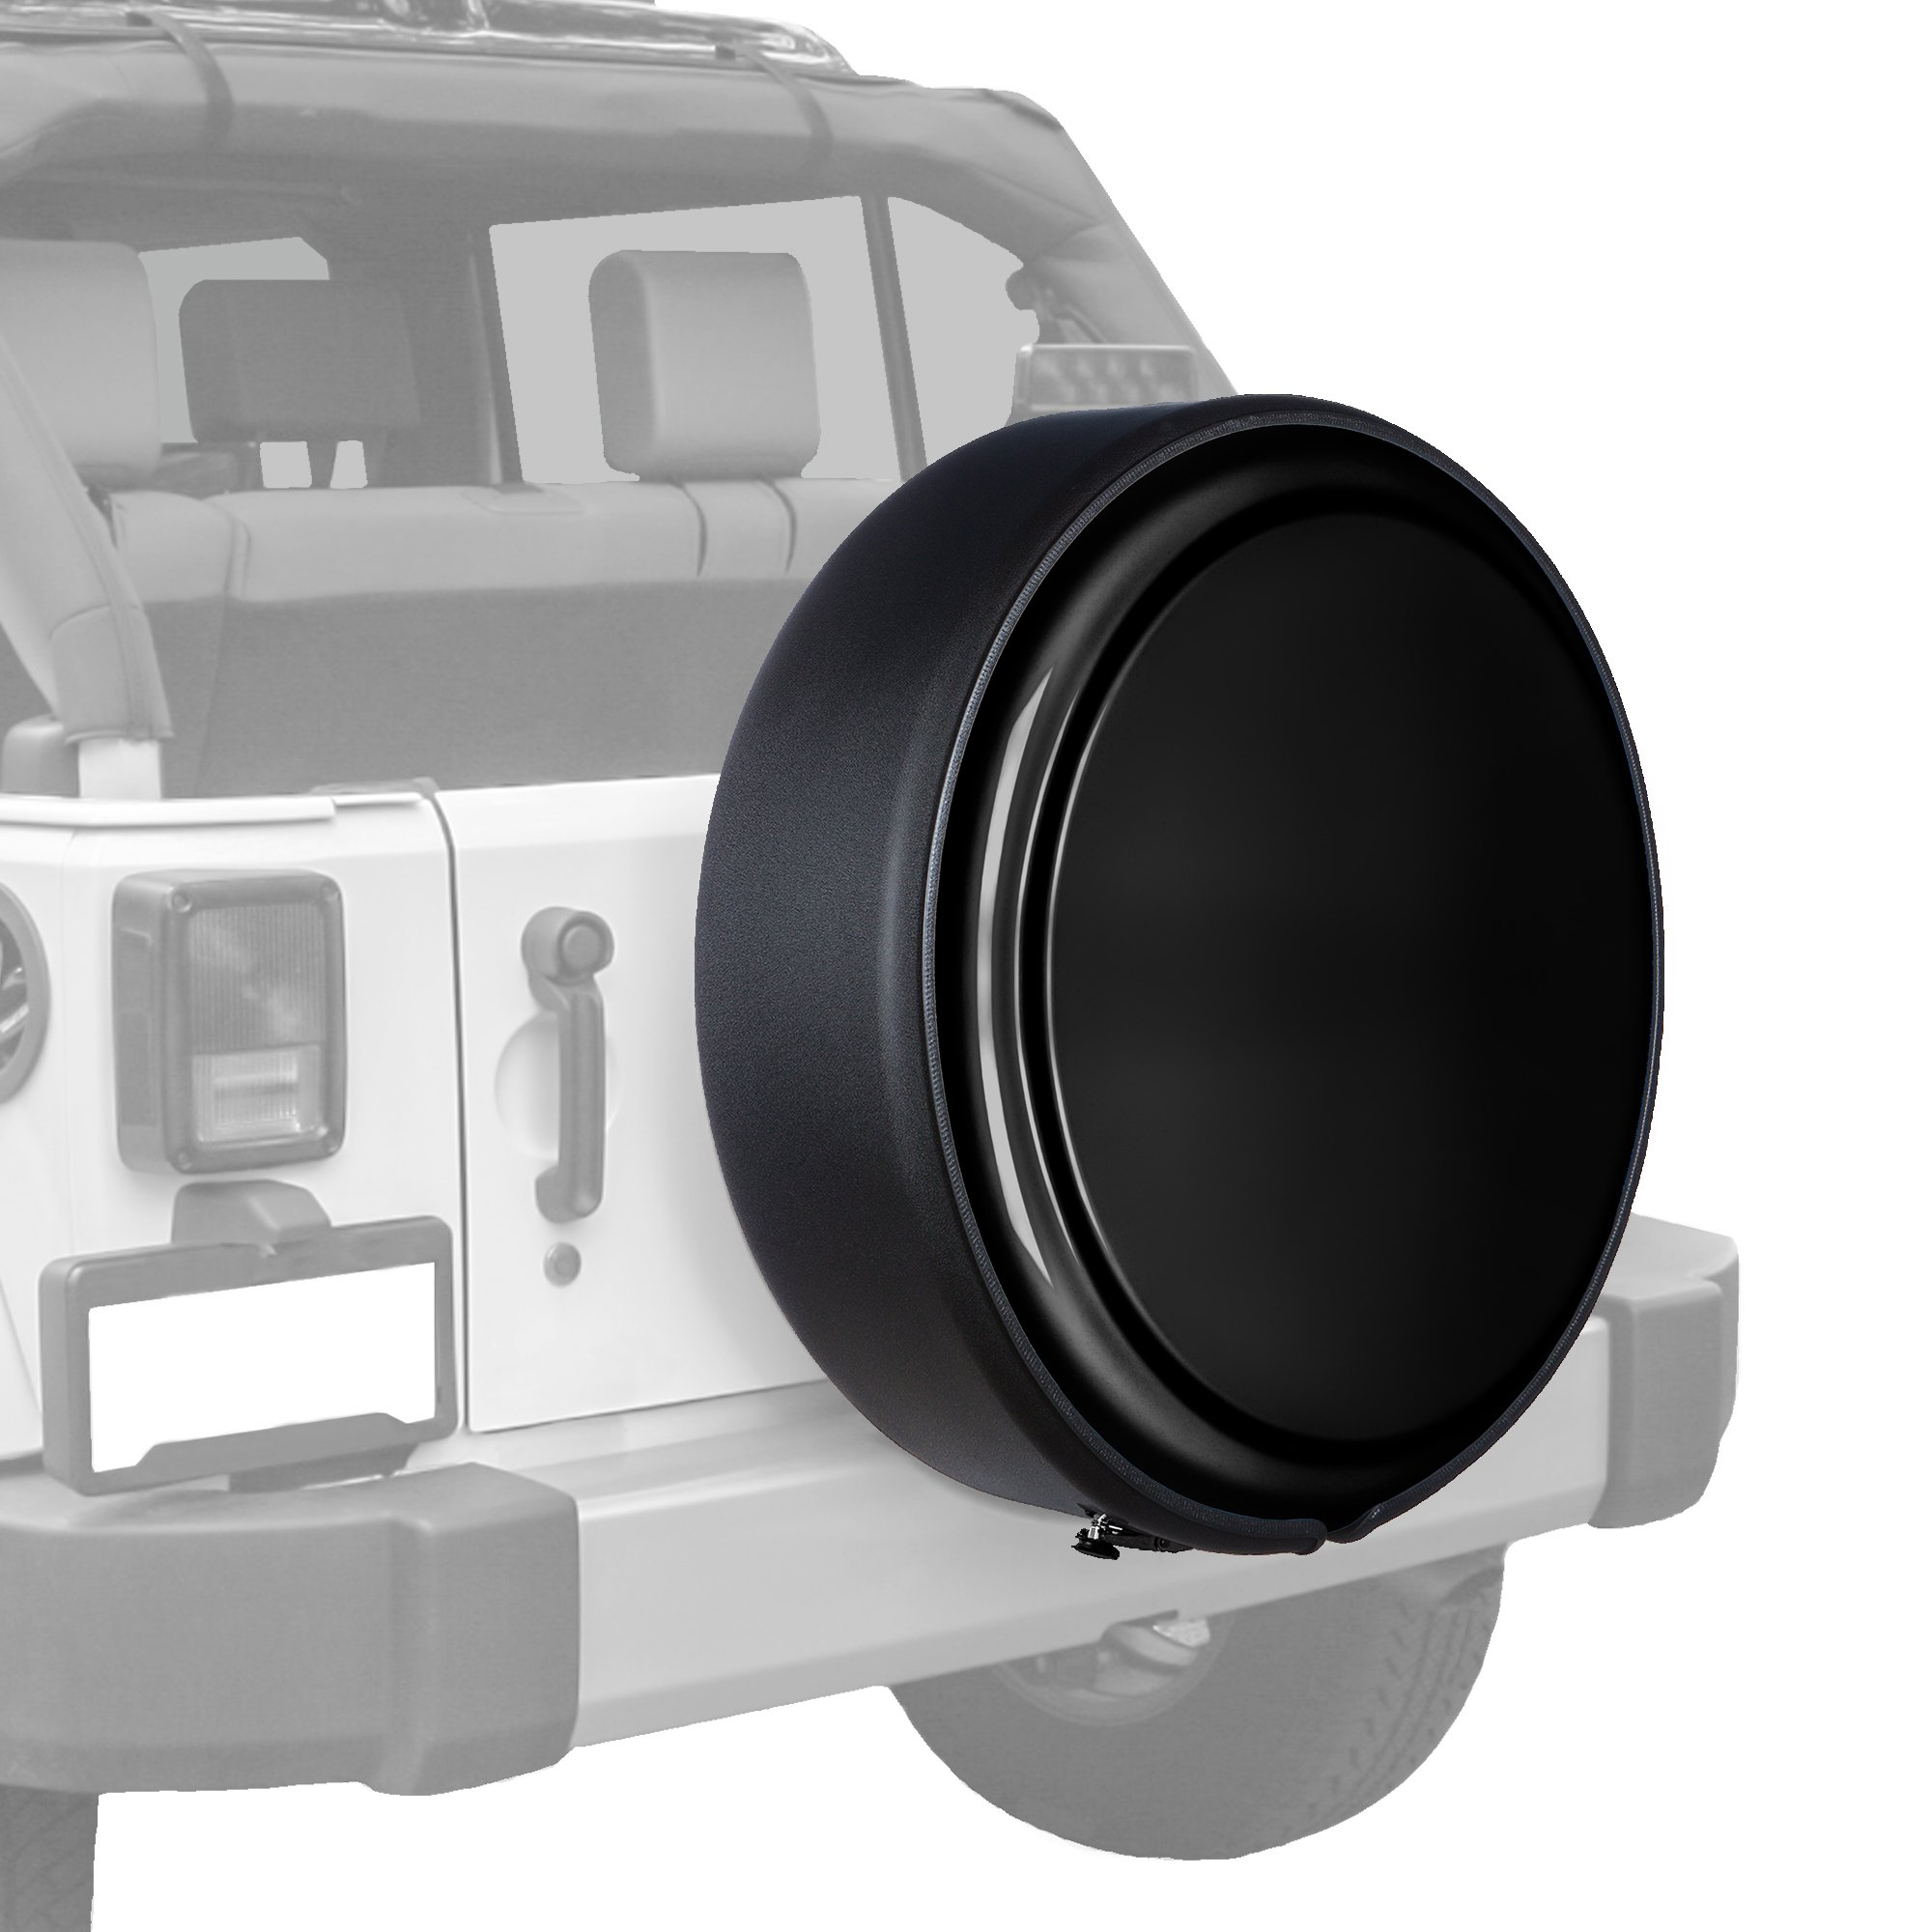 Jeep Wrangler JK - (Moab/X Edition) - 31.5'' MasterSeries Hard Tire Cover - (Painted Plastic Face & Black Powder Coated Steel Ring) - Black